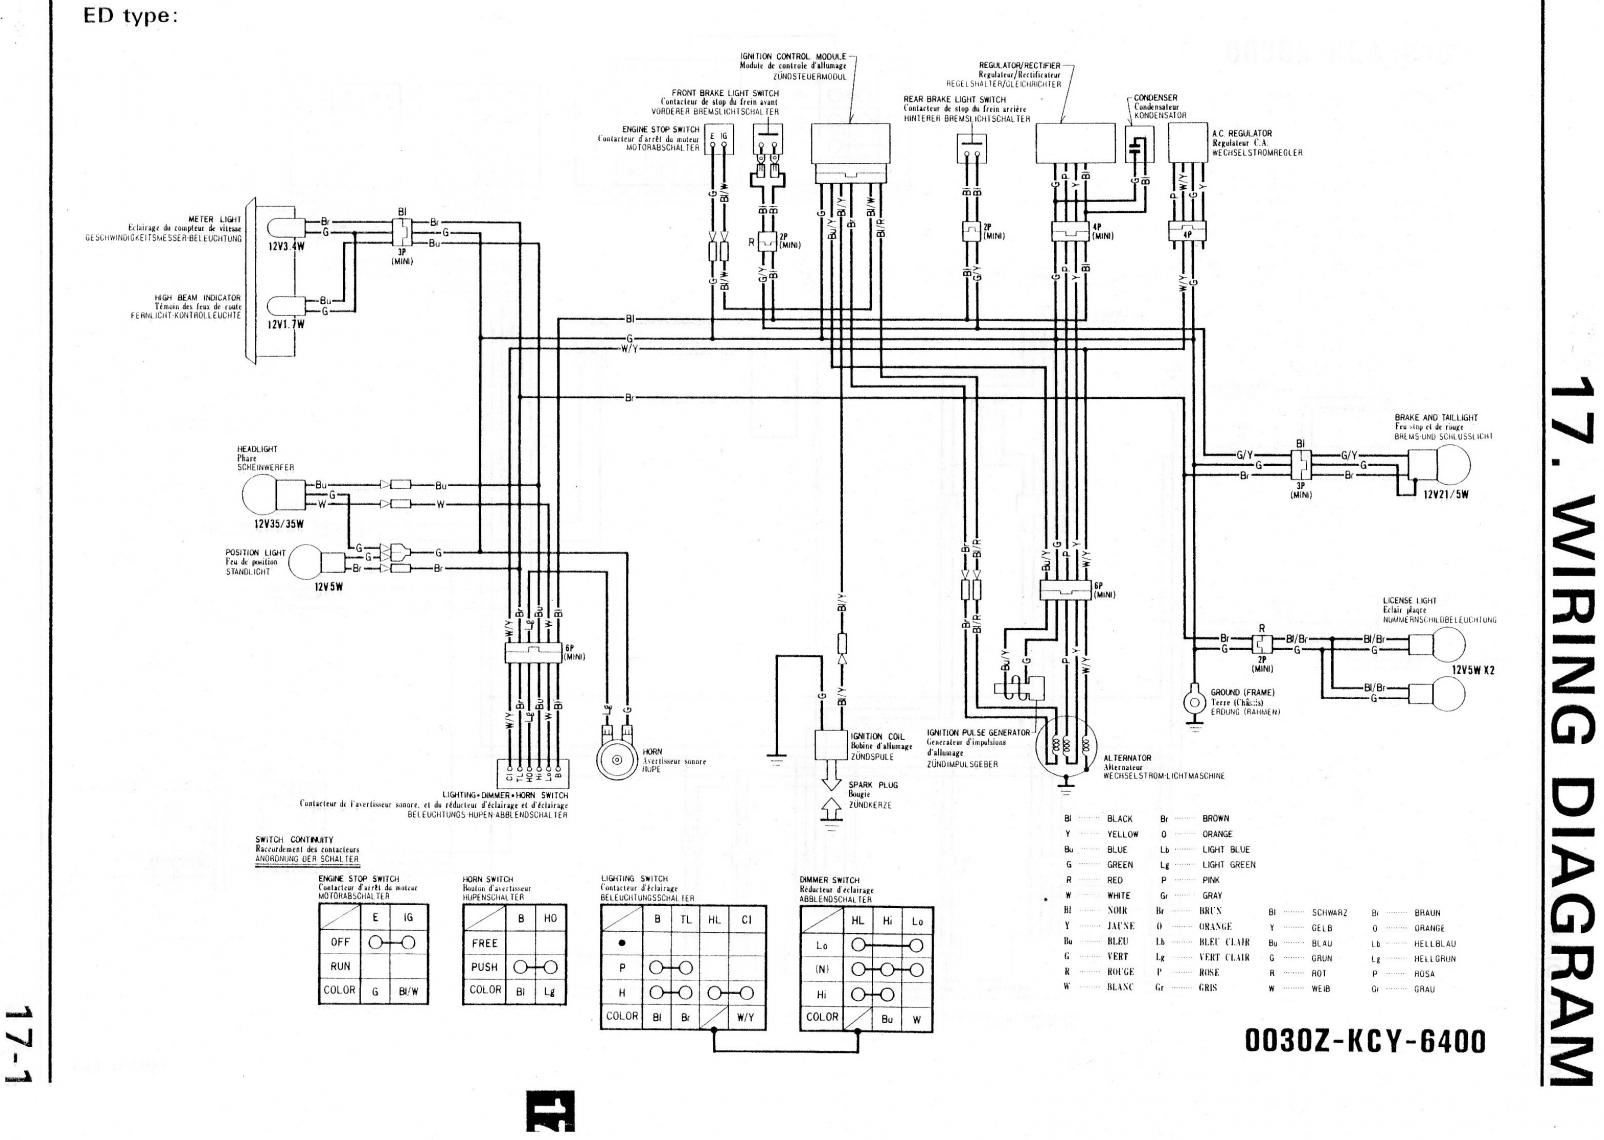 2002 saturn l200 fuse box diagram image details rh motogurumag com 2002  Saturn SL2 Wiring-Diagram Saturn Throttle Body Diagram